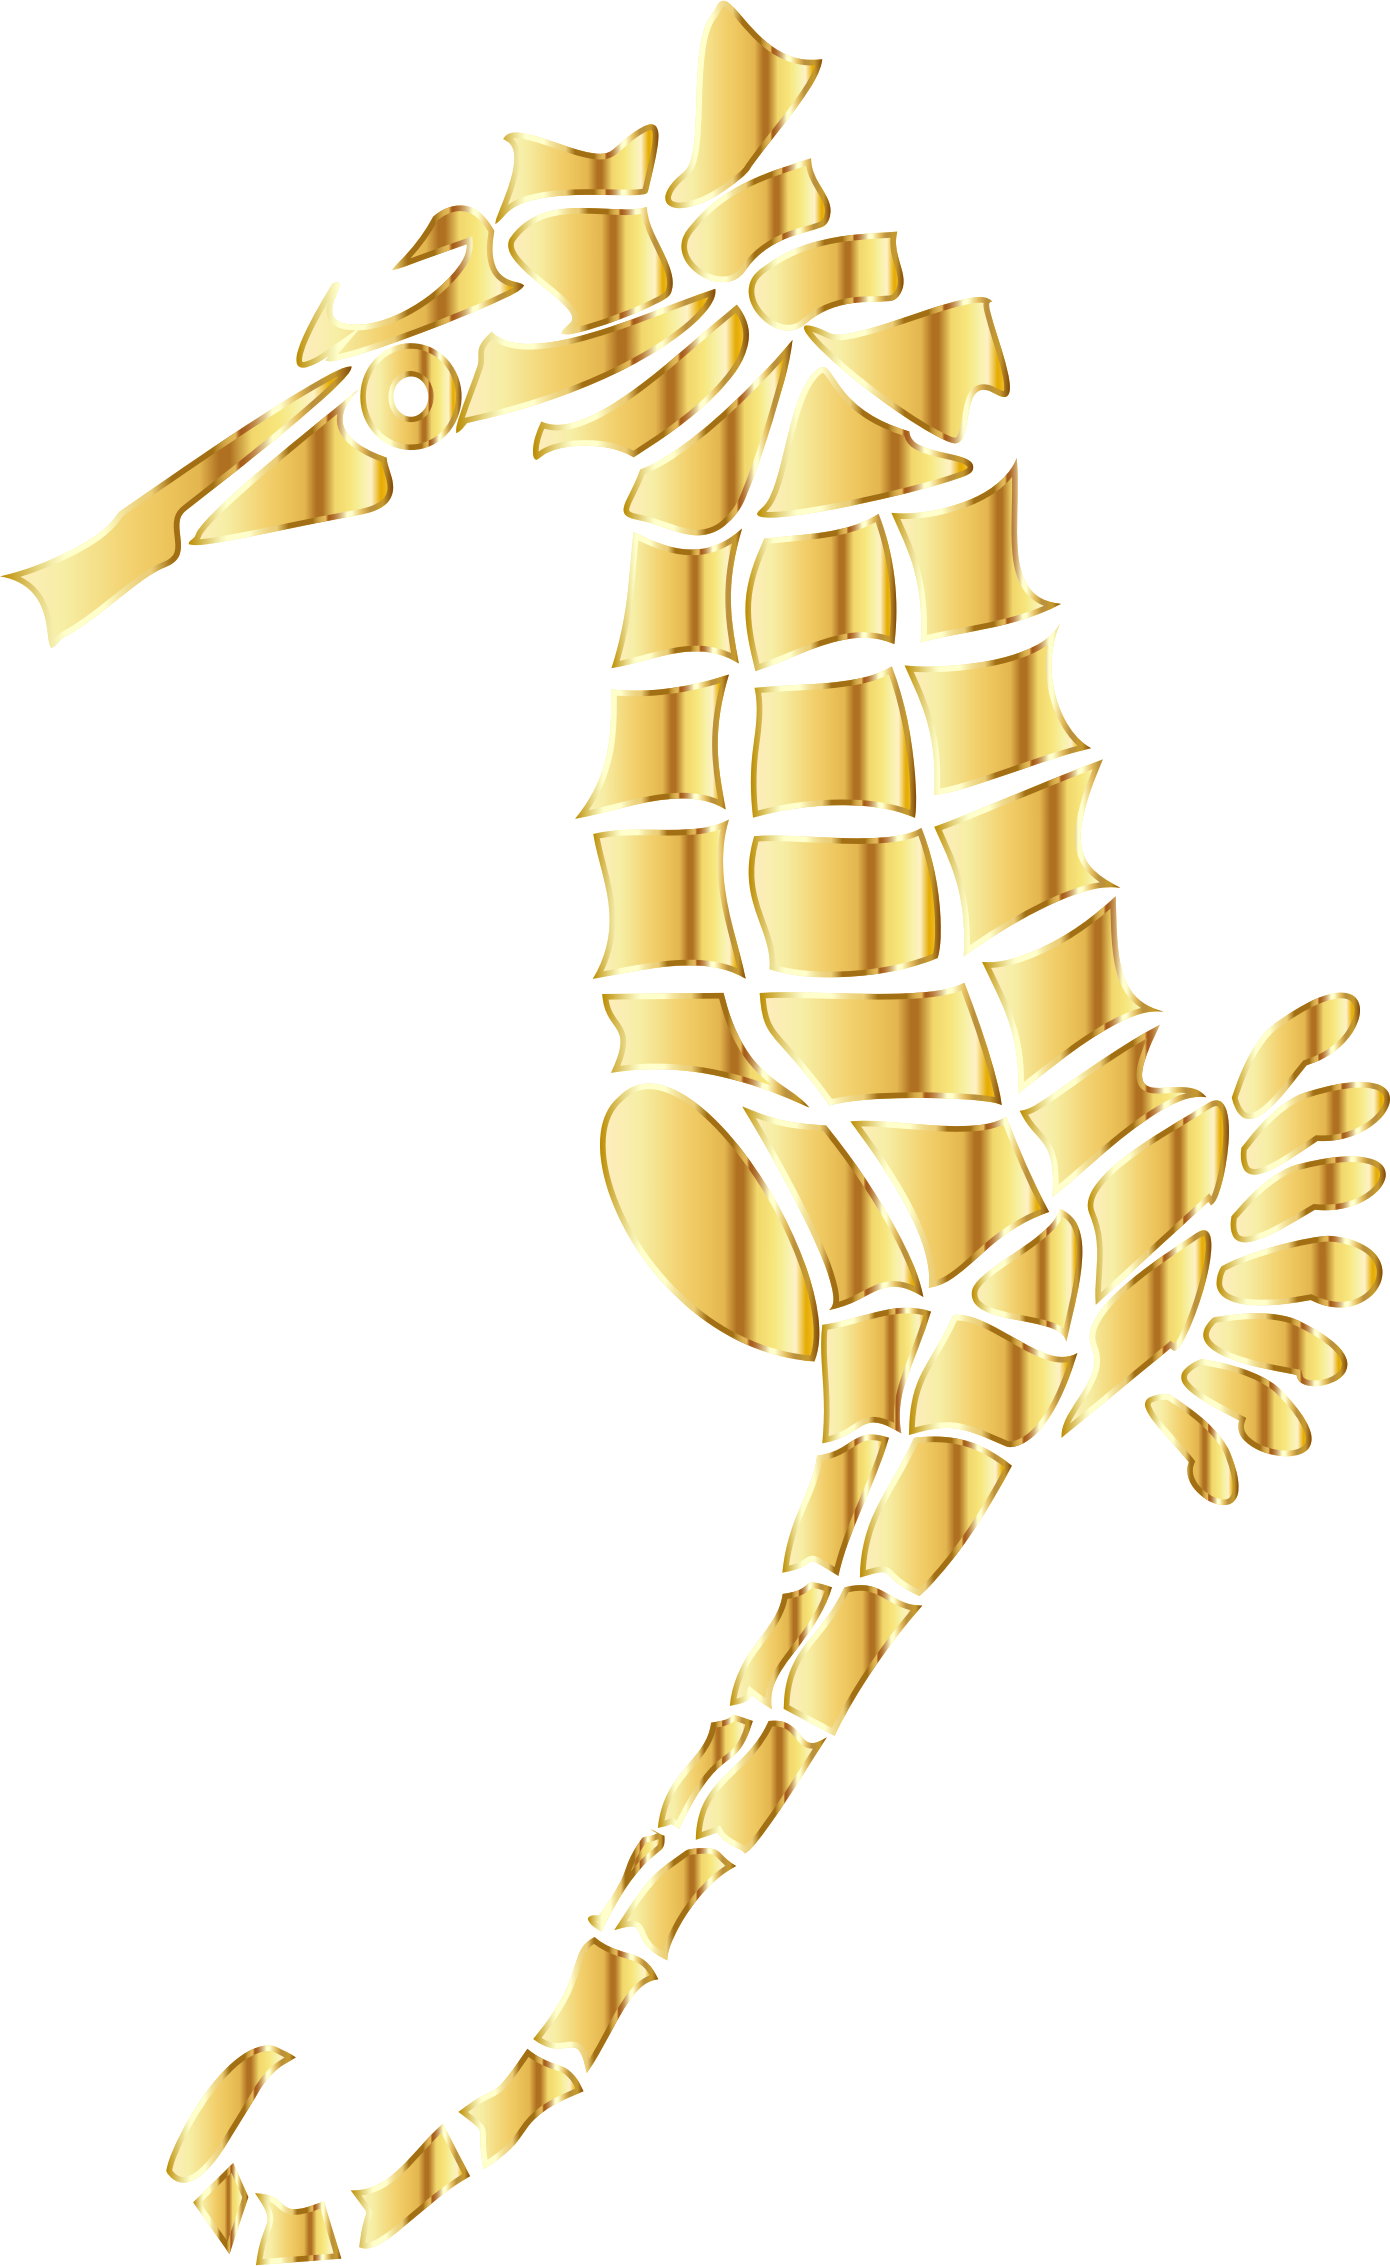 Gold Stylized Seahorse Silhouette No Background by GDJ